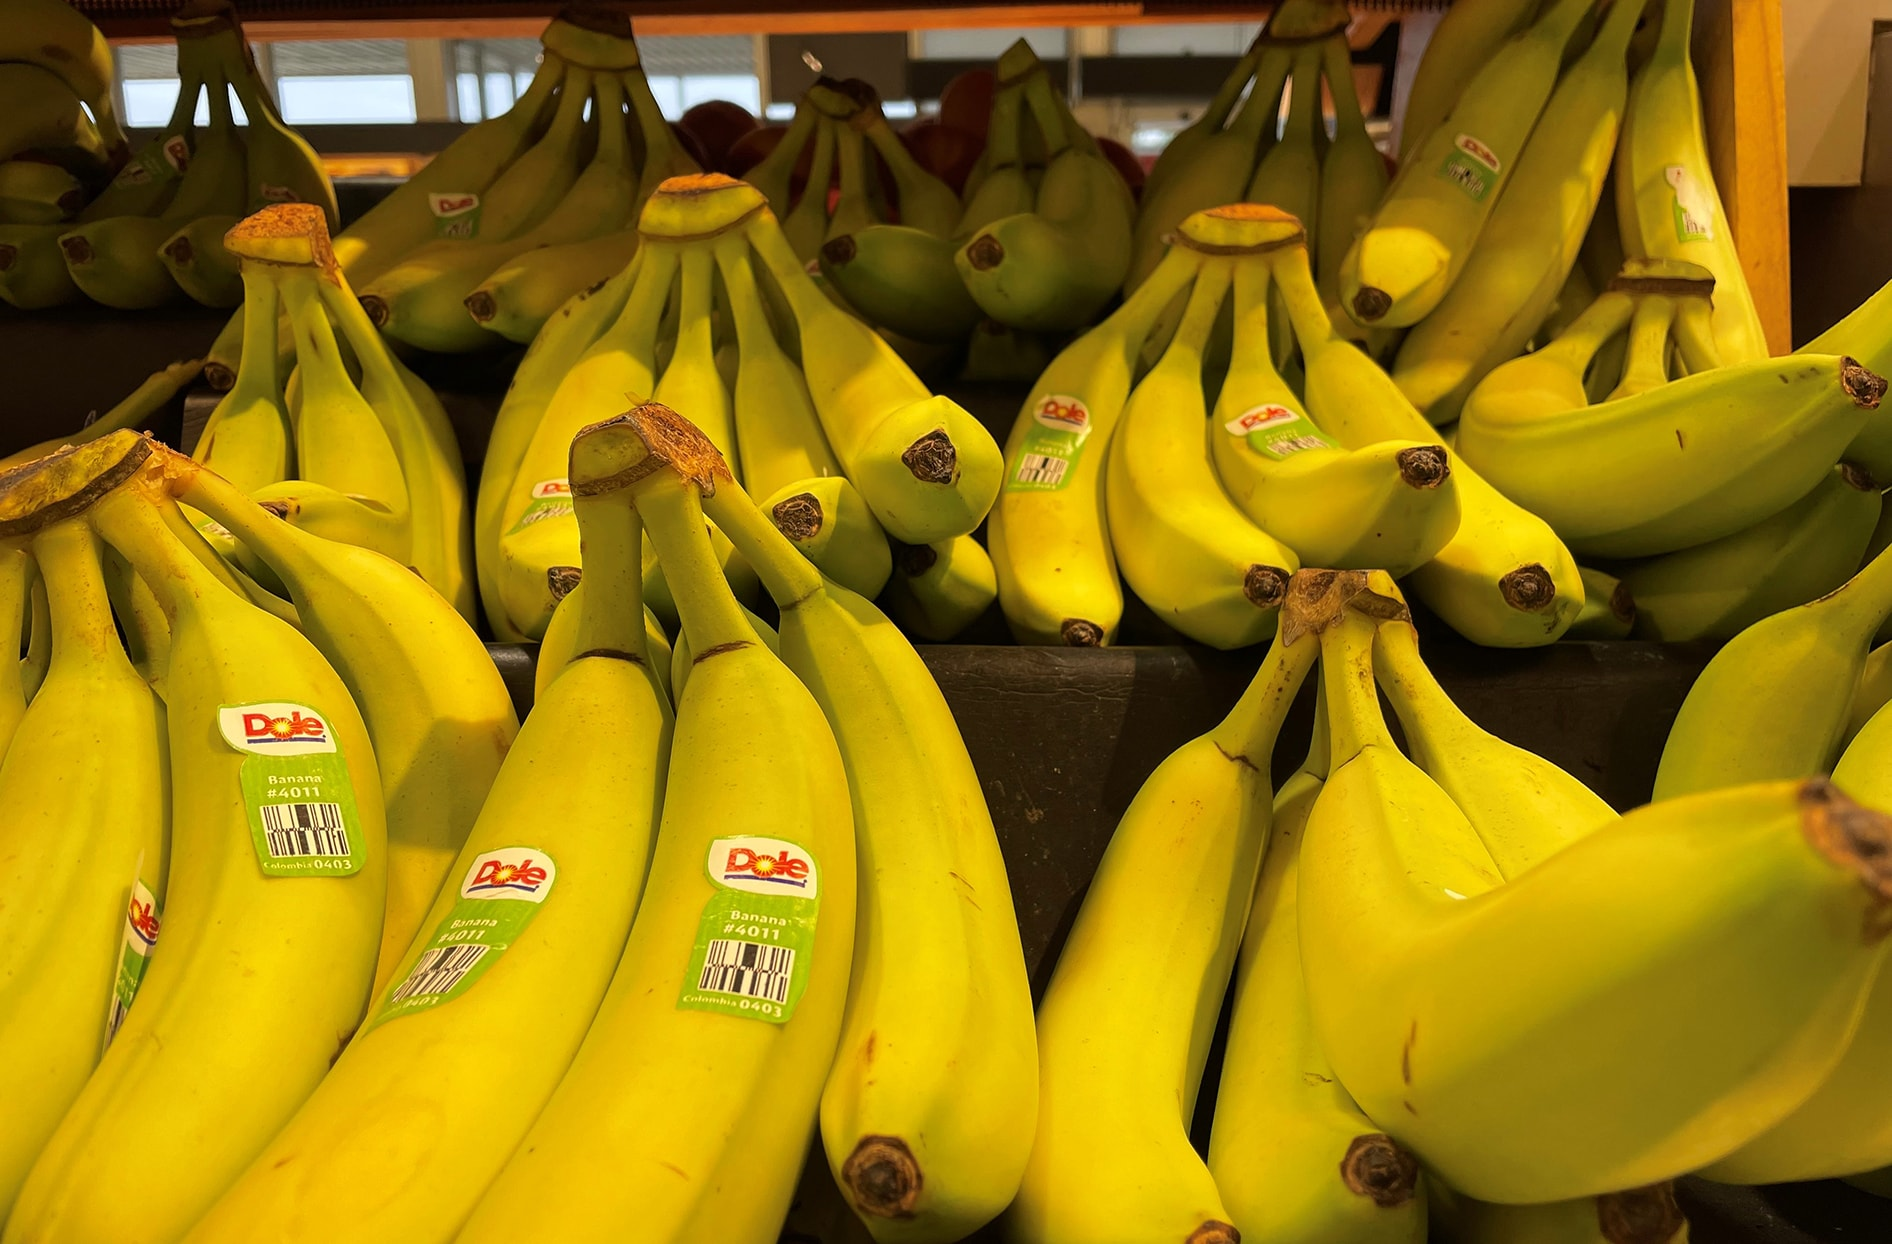 A bunch of bananas on a shelf in one of our grocery stores.